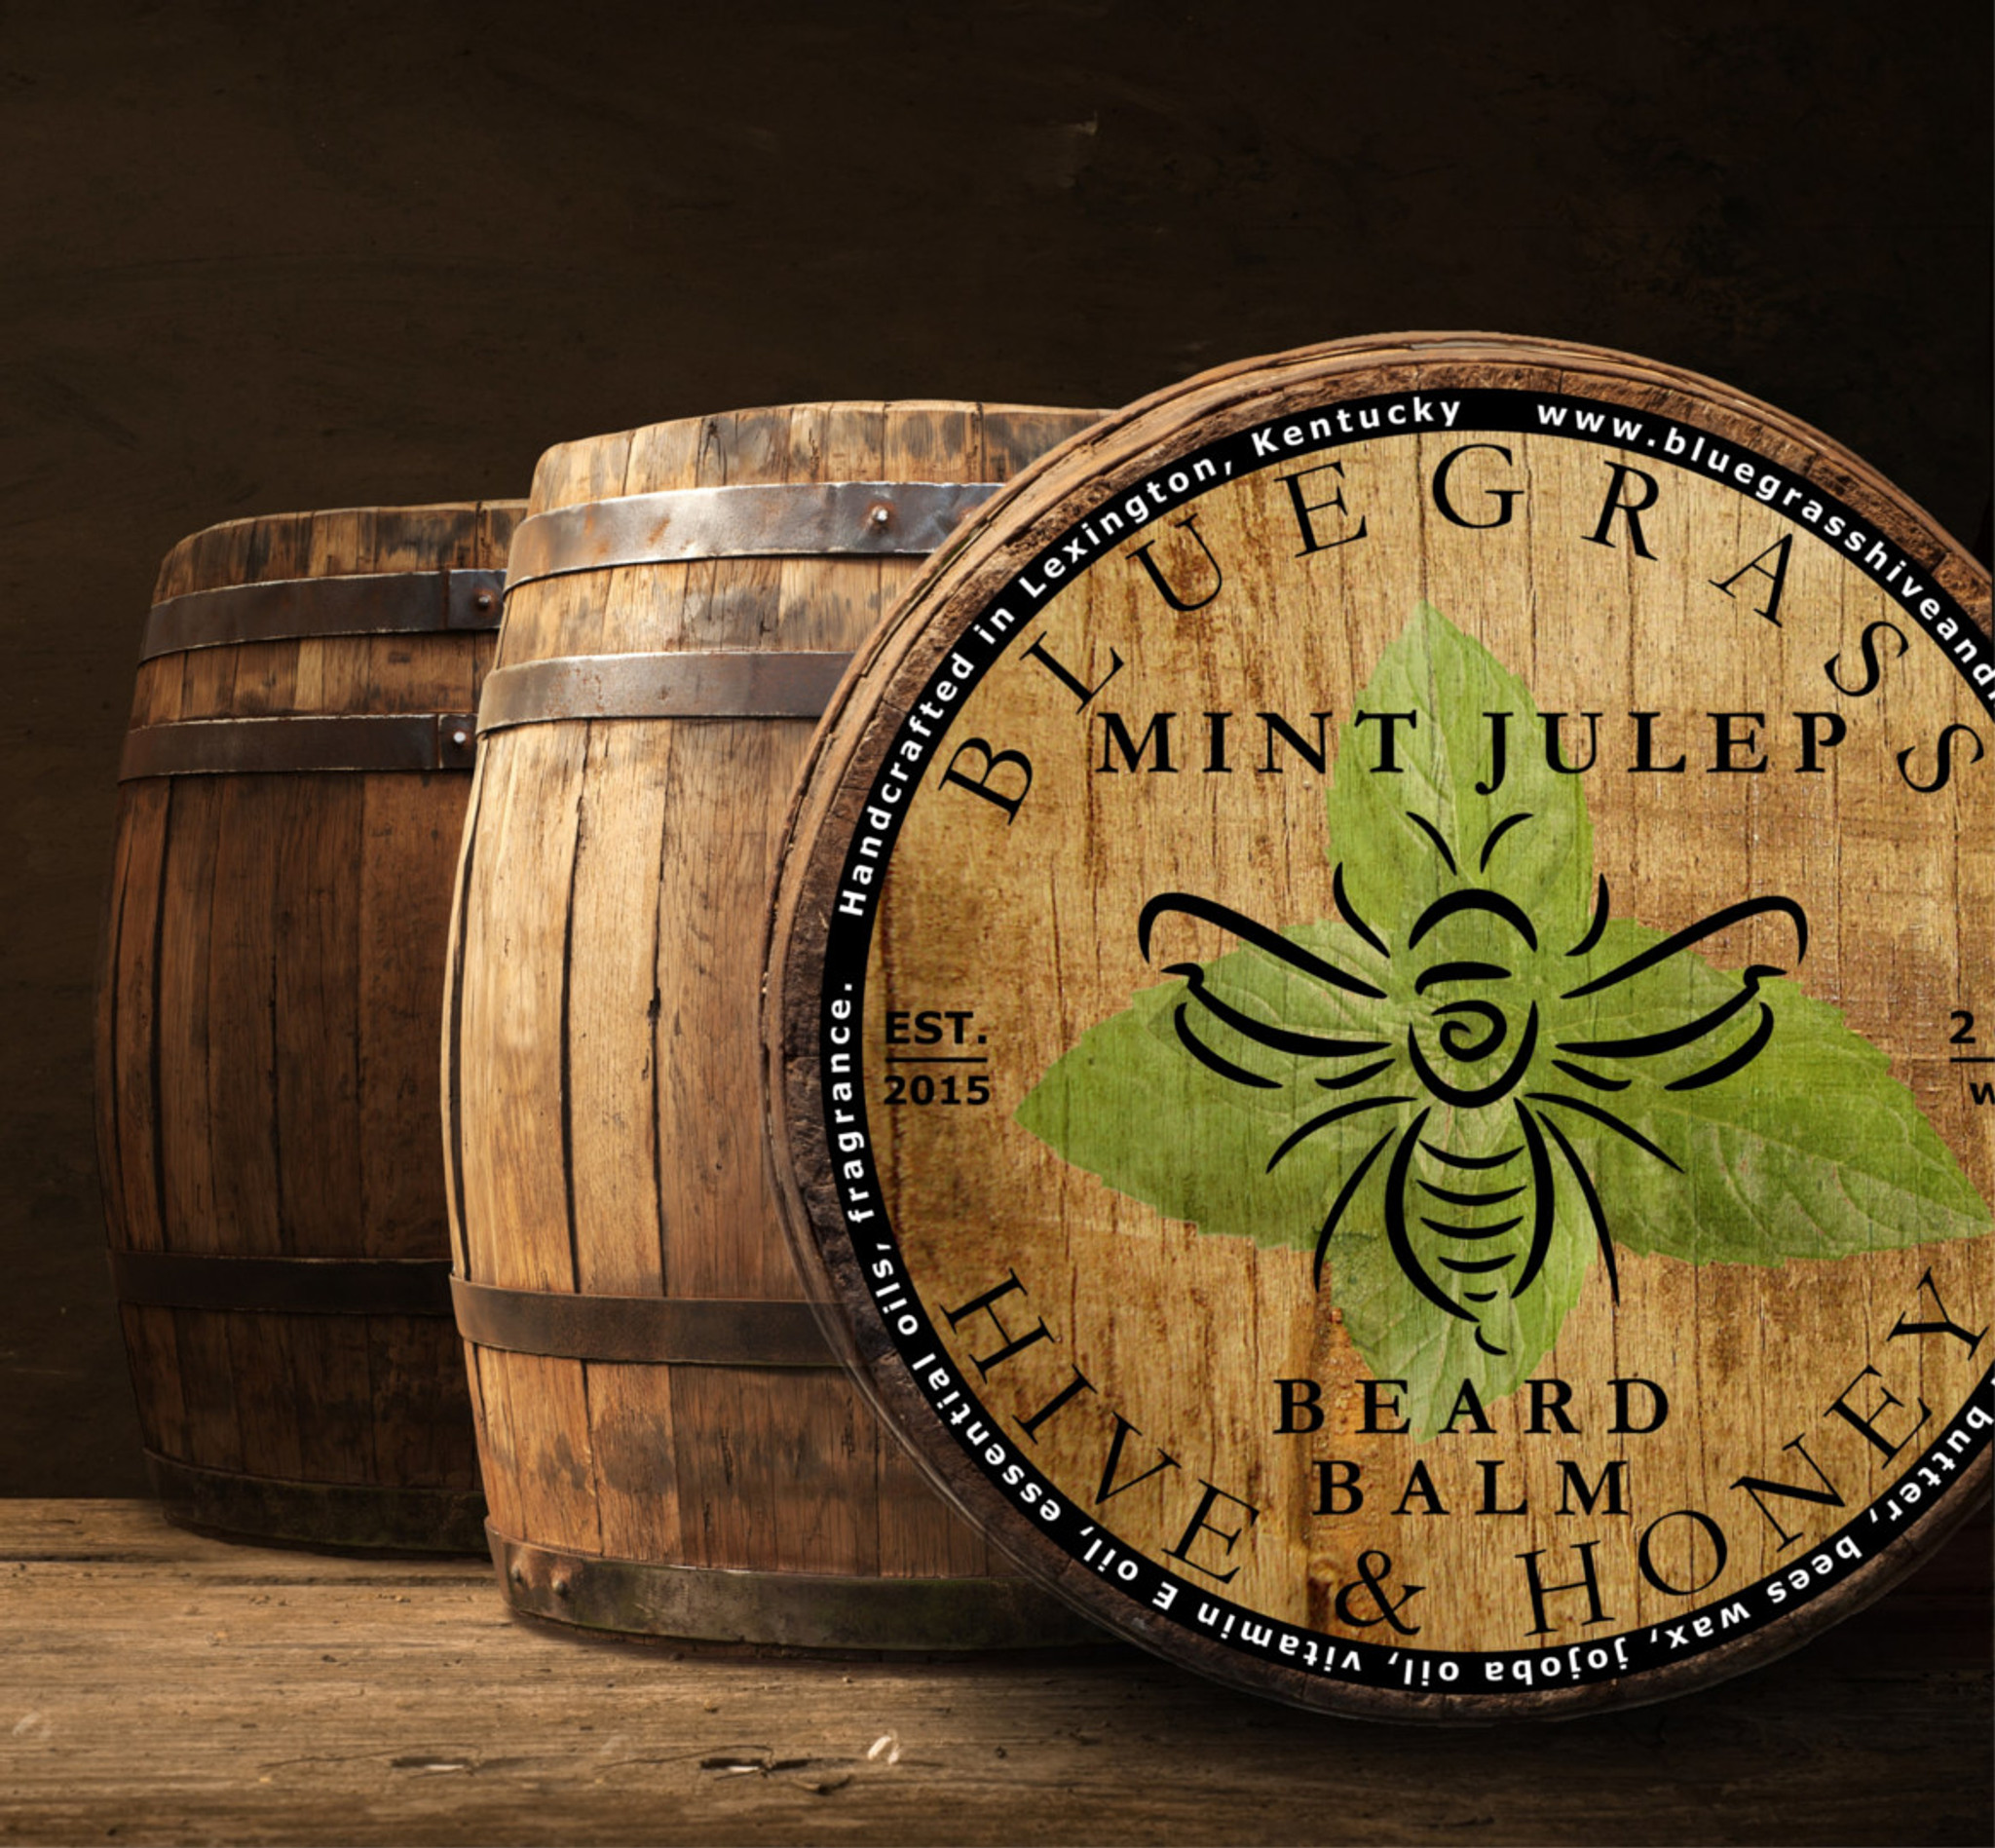 Introducing our newest beard balm and beard oil - Mint Julep